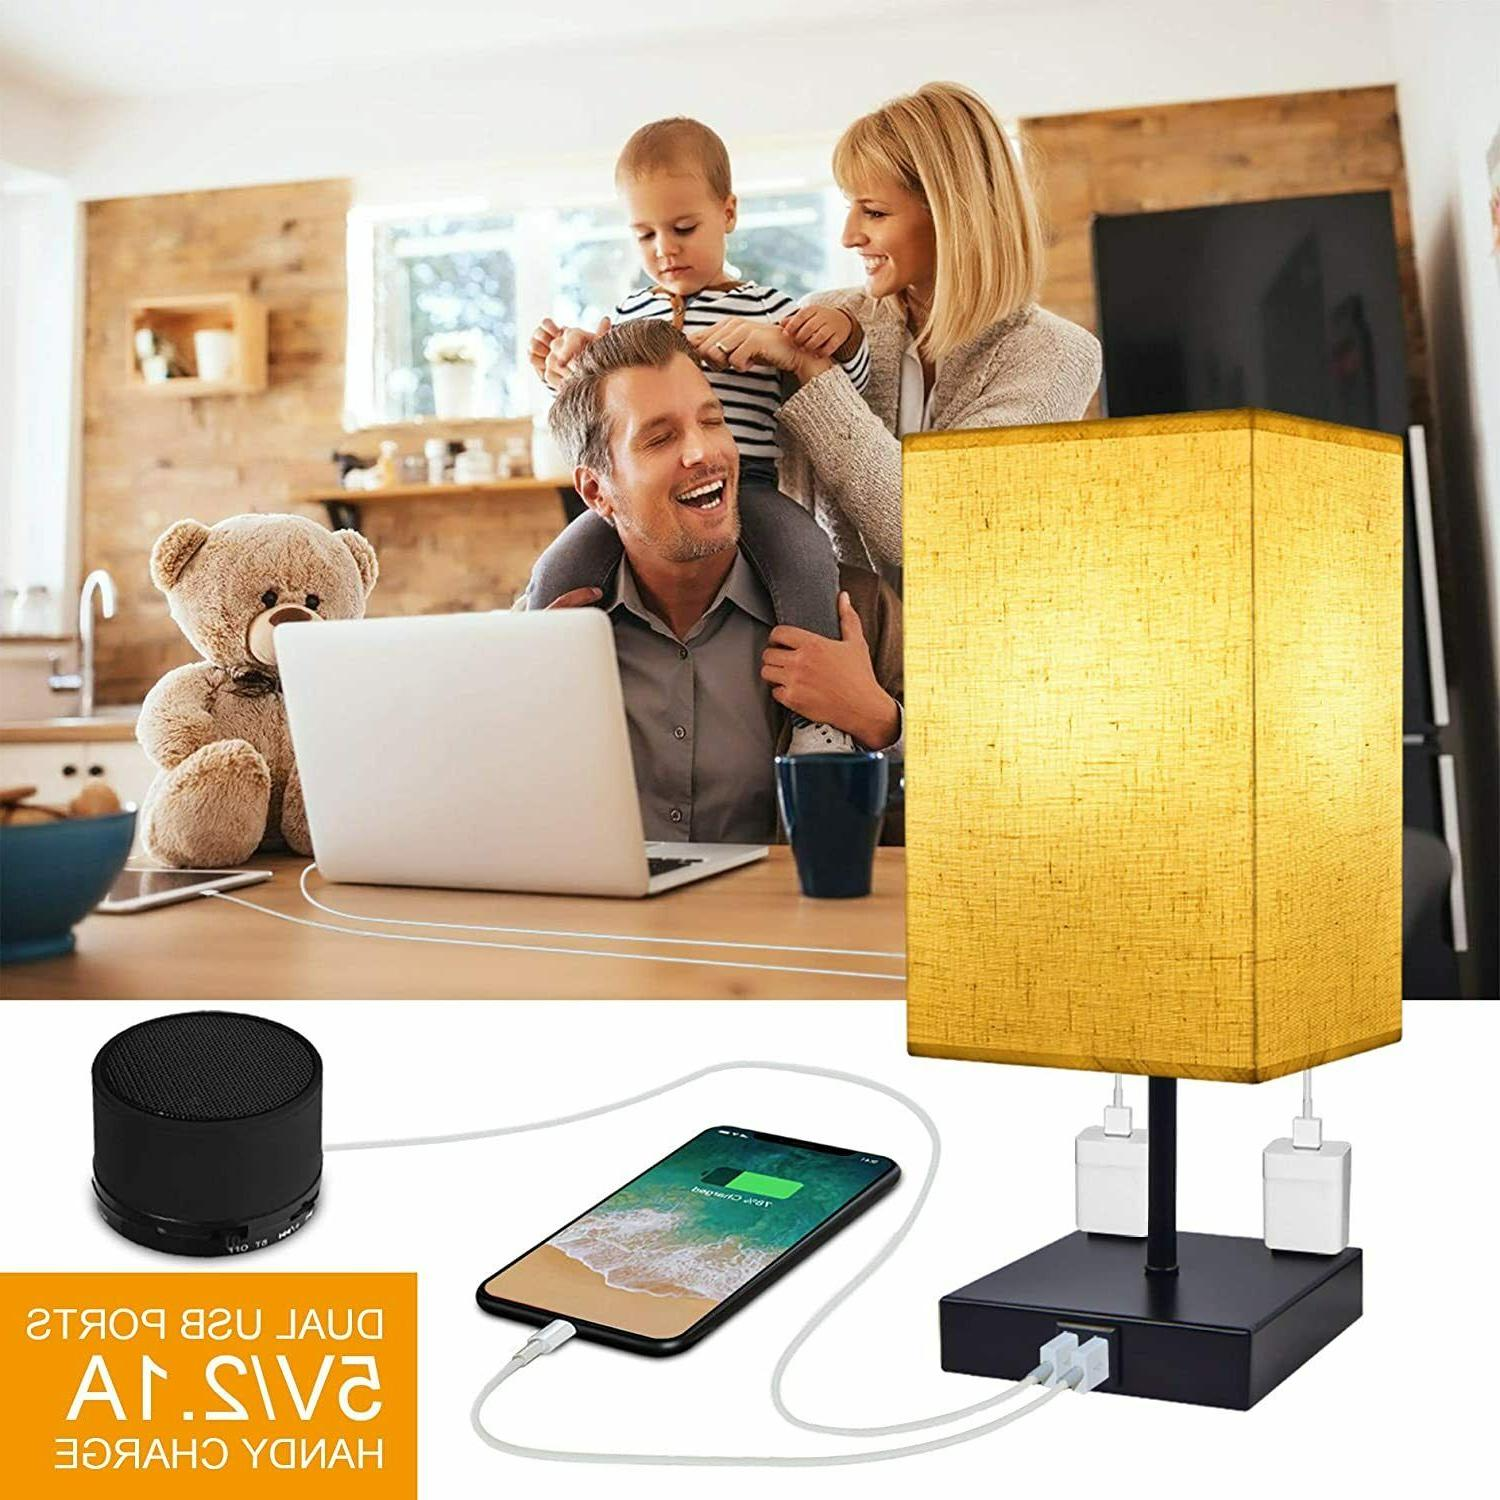 Dimmable 3-Way Control Bedside Lamp, Modern Table Lamp USB